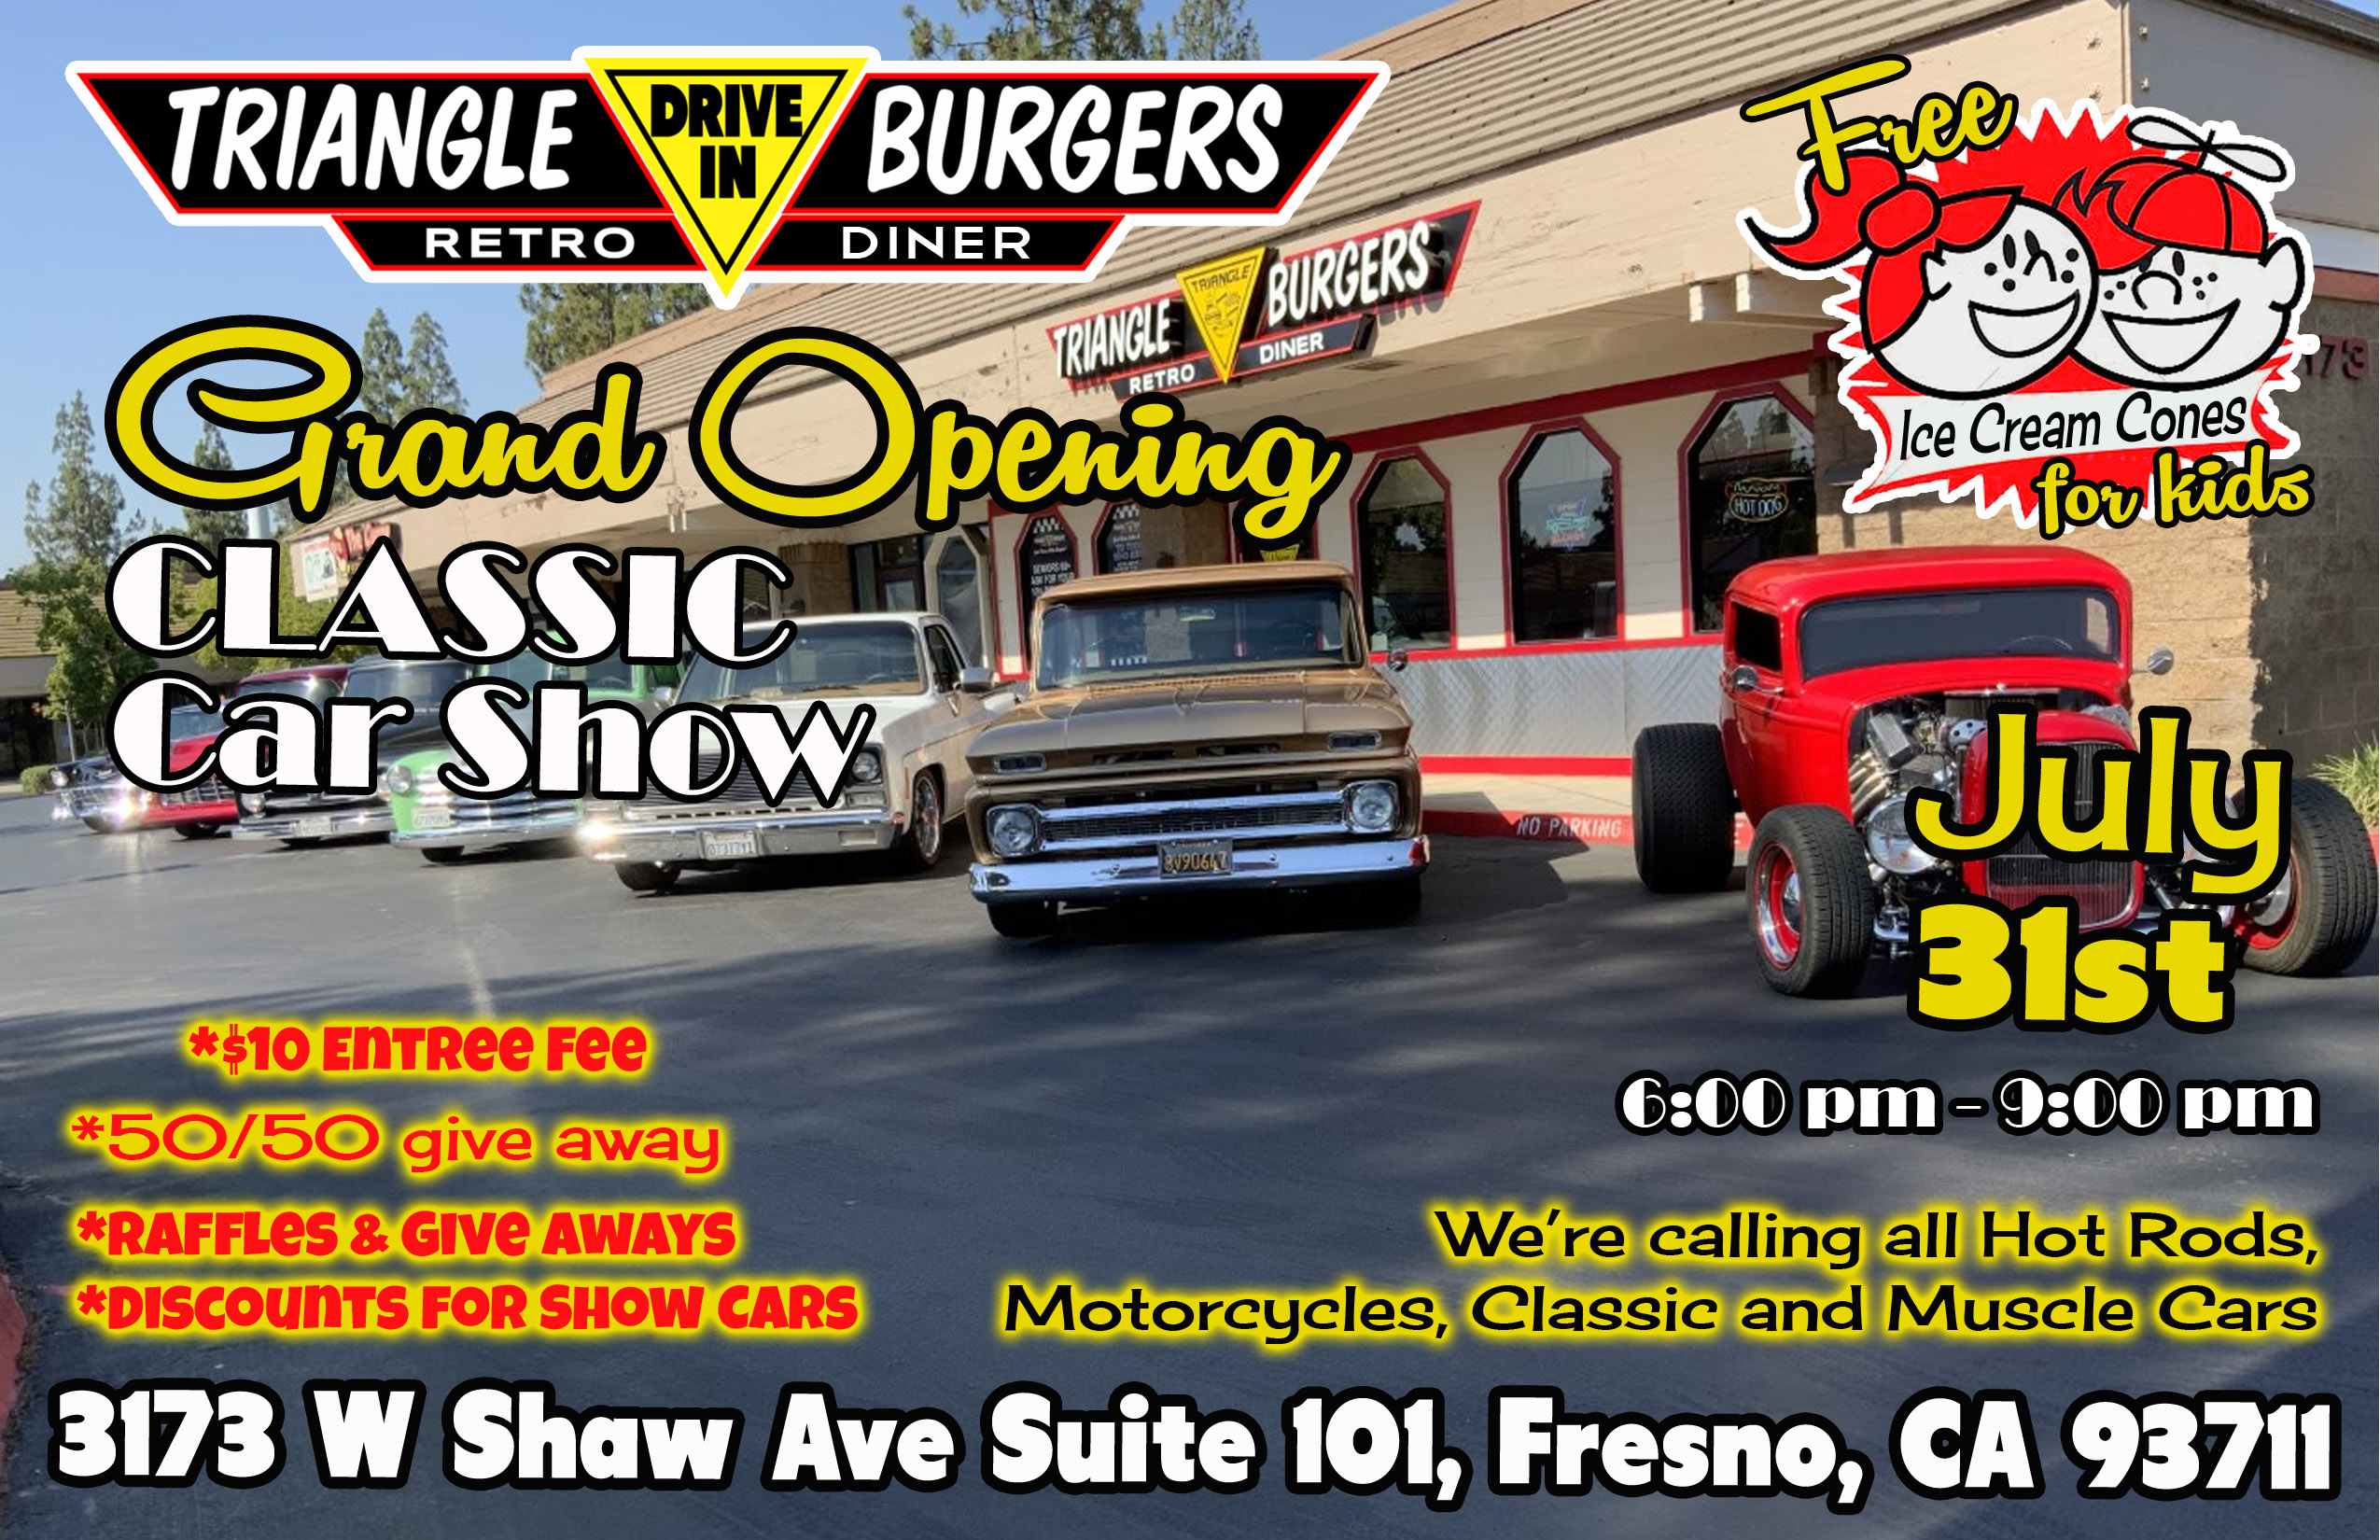 New Location for Triangle Drive In at 3173 W. Shaw in Fresno, CA